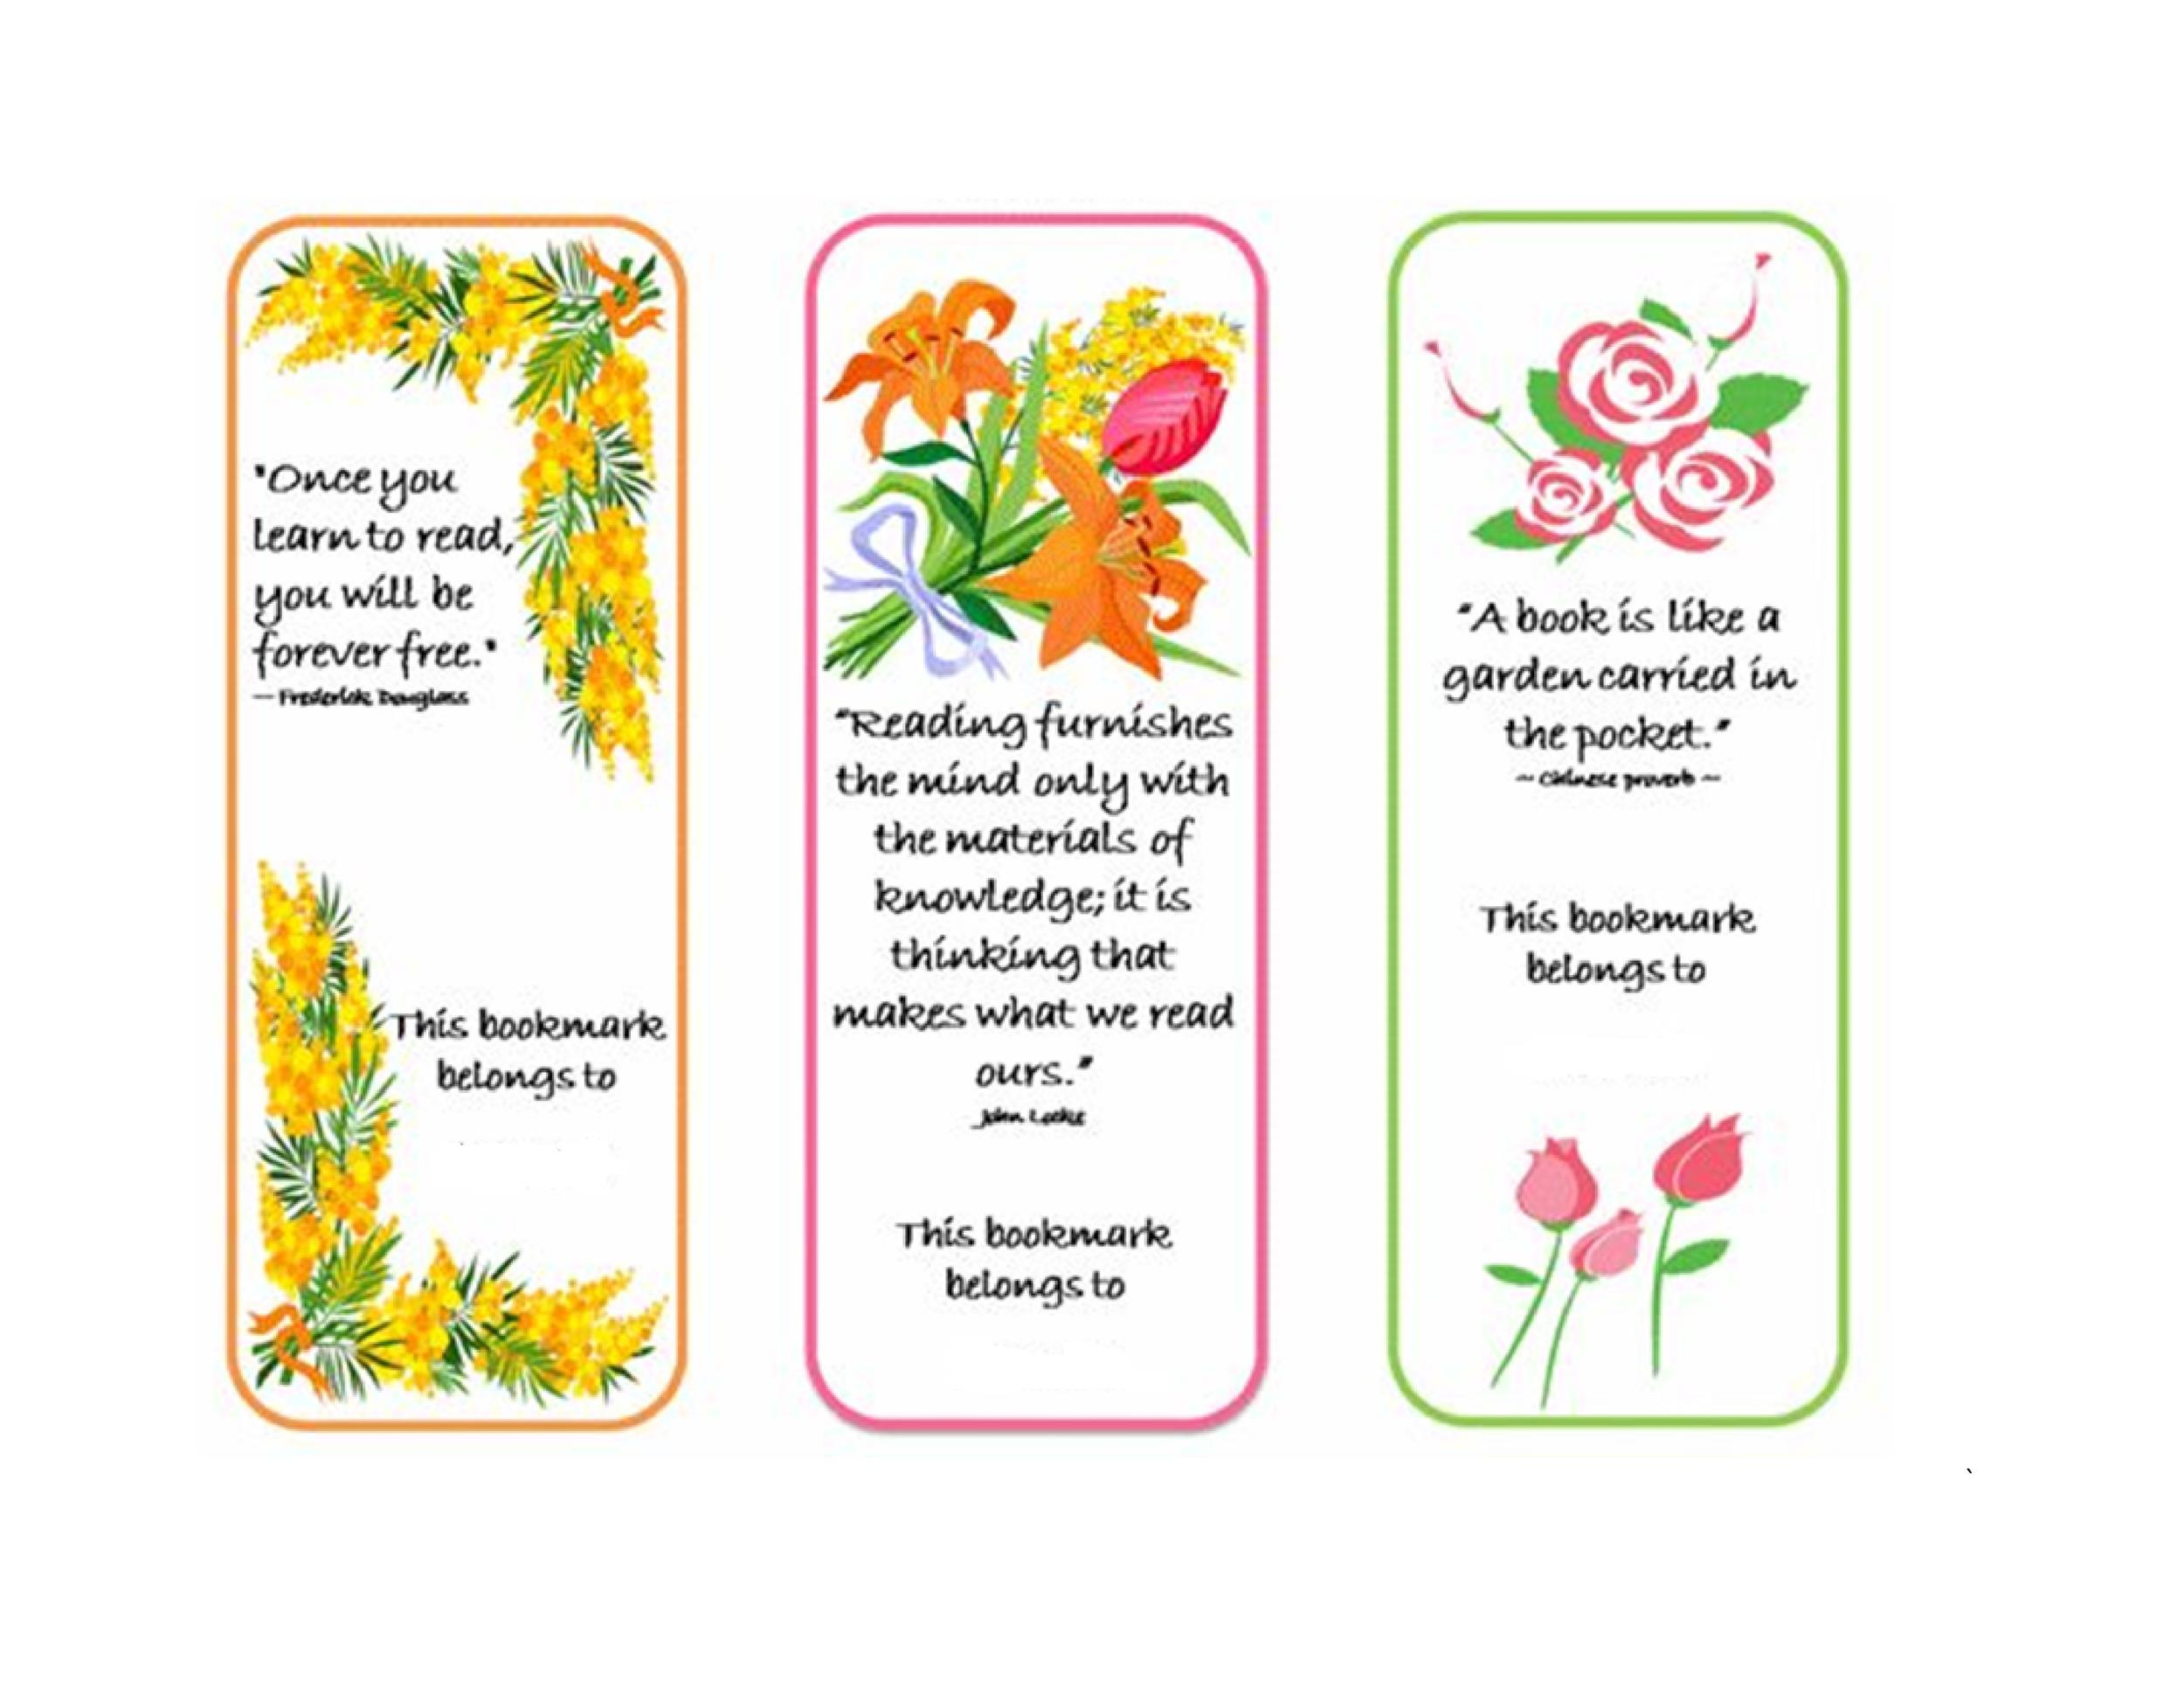 graphic about Free Printable Bookmark Templates titled 50 Cost-free Printable Bookmark Templates ᐅ Template Lab